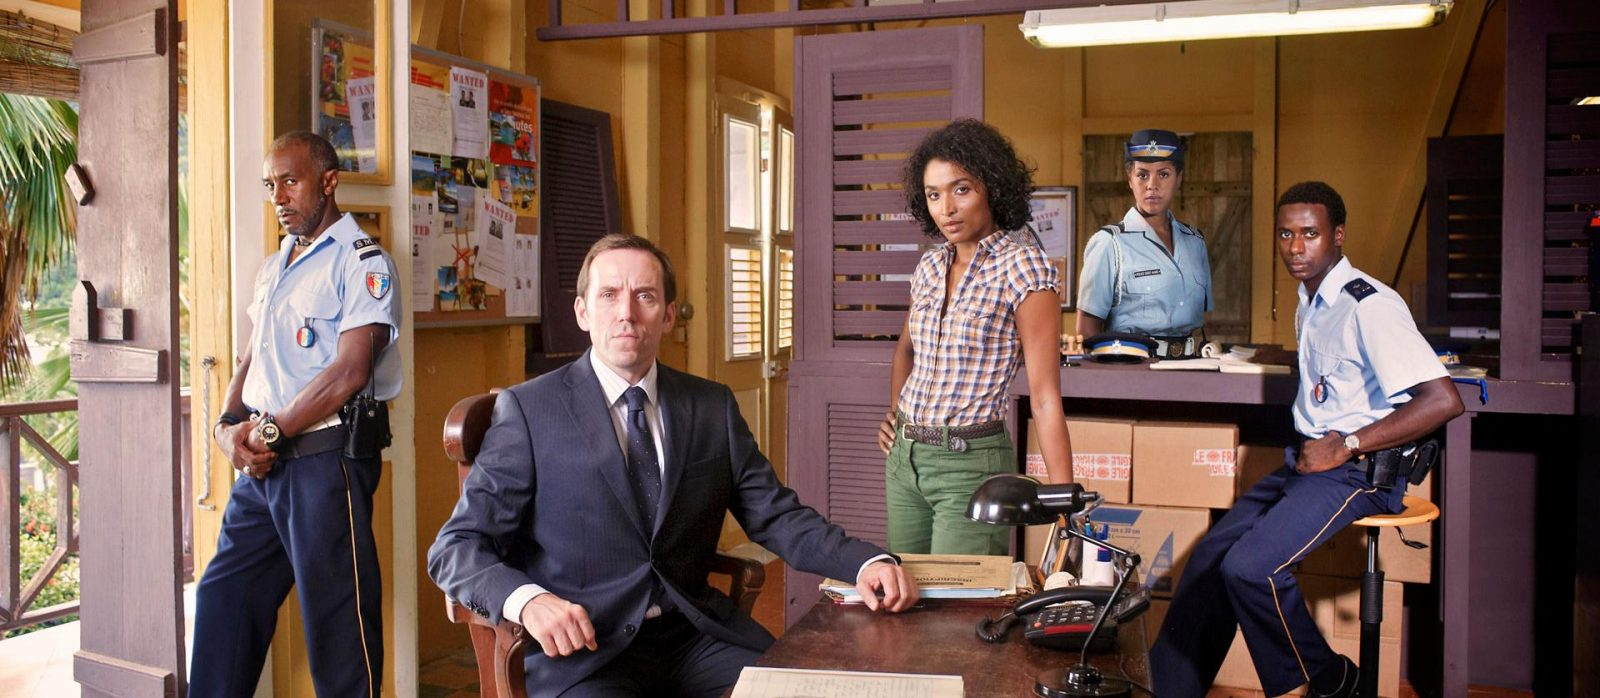 The cast of 'Death in Paradise' (News file photo)